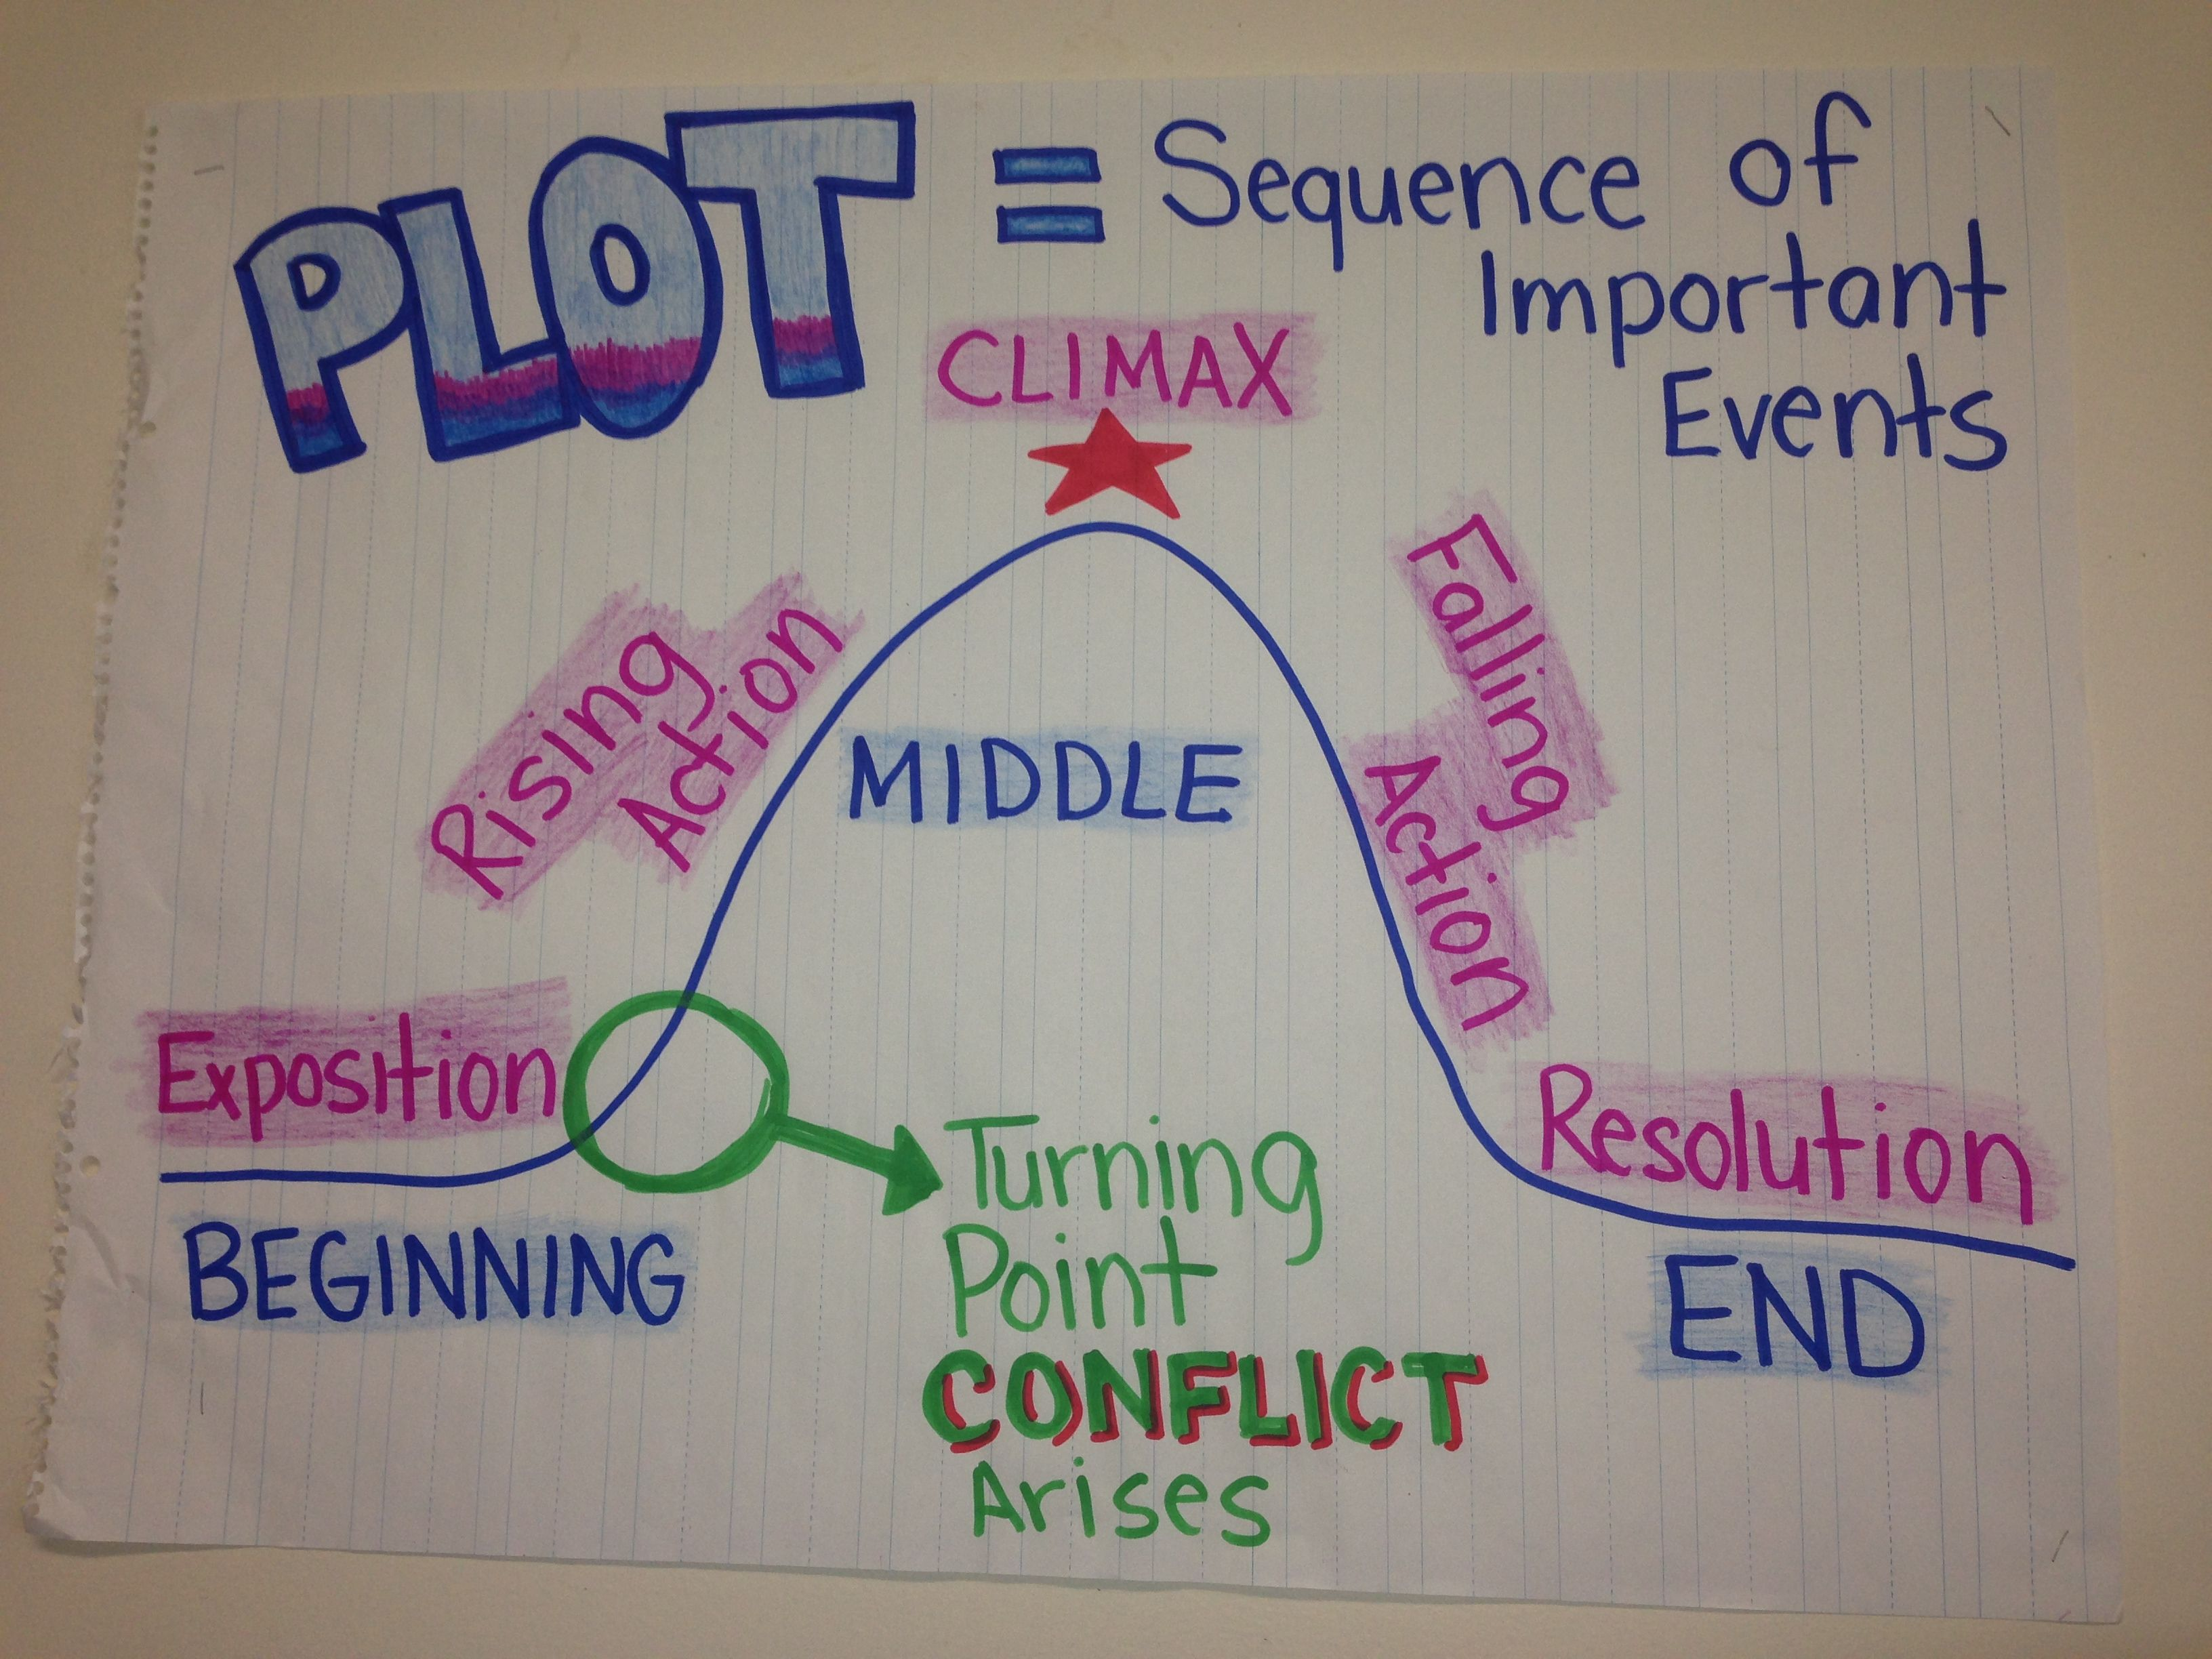 a plot and setting analysis of the story after the bomb We get the vital stats on each character: dad is a jokester, momma is from the south, joey is super sensitive, kenny is a nice kid, and byron is a juvenile delinquent the bombing itself is pretty climactic, but in terms of the story, the climax comes when kenny goes into the church after the bombing he finds a shoe that.